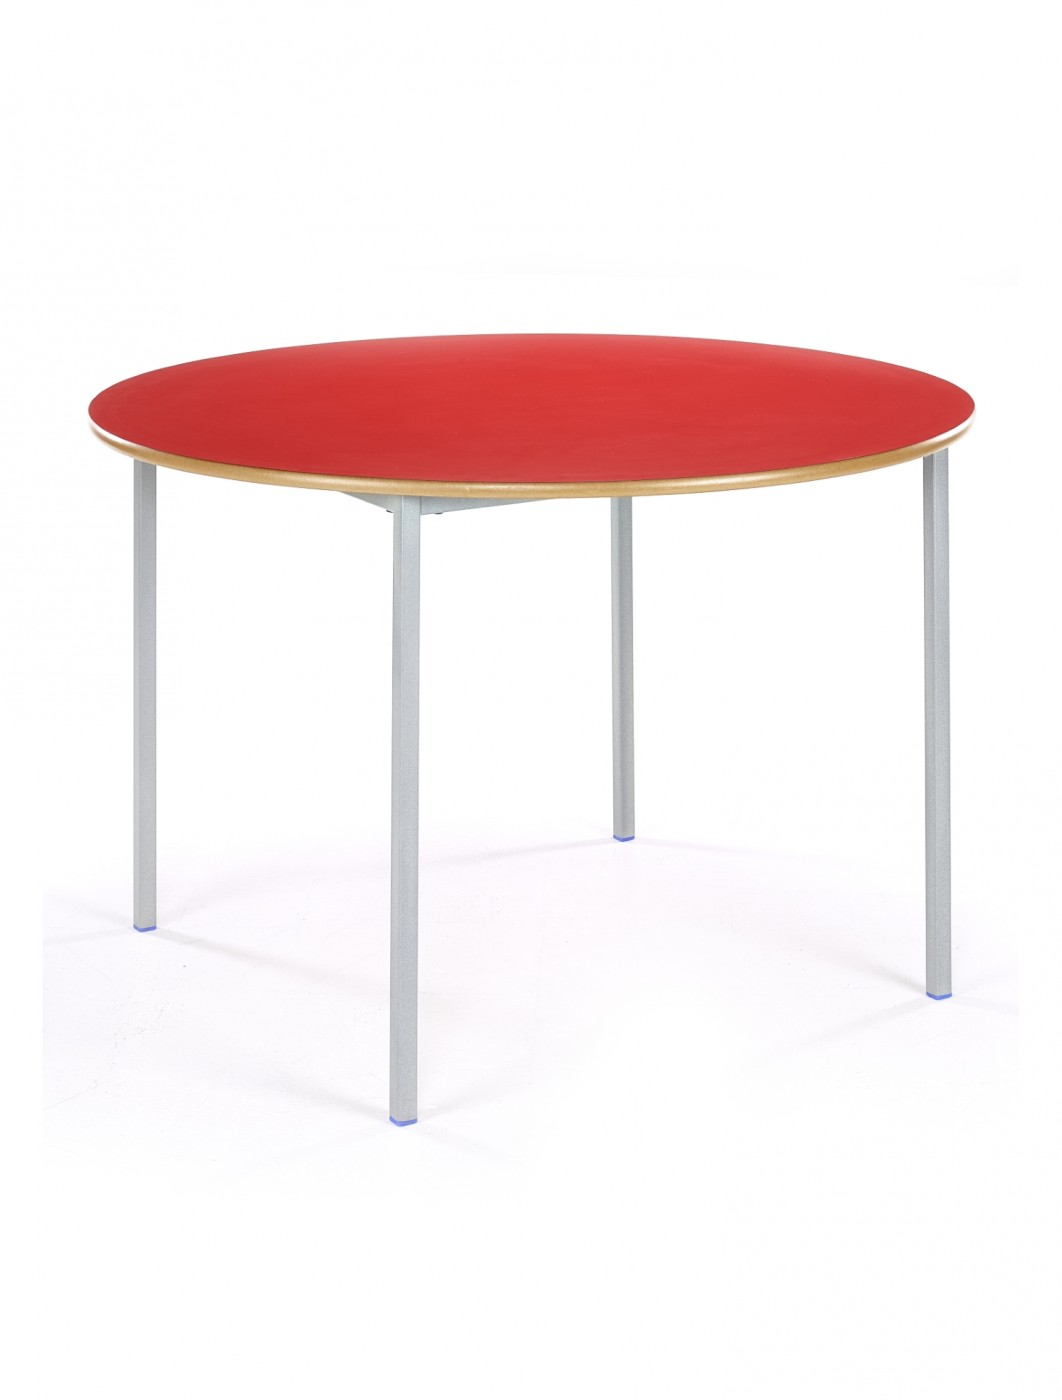 Classroom Tables - 1100mm Circular Tables SQSS-11C-MD - Fully Welded